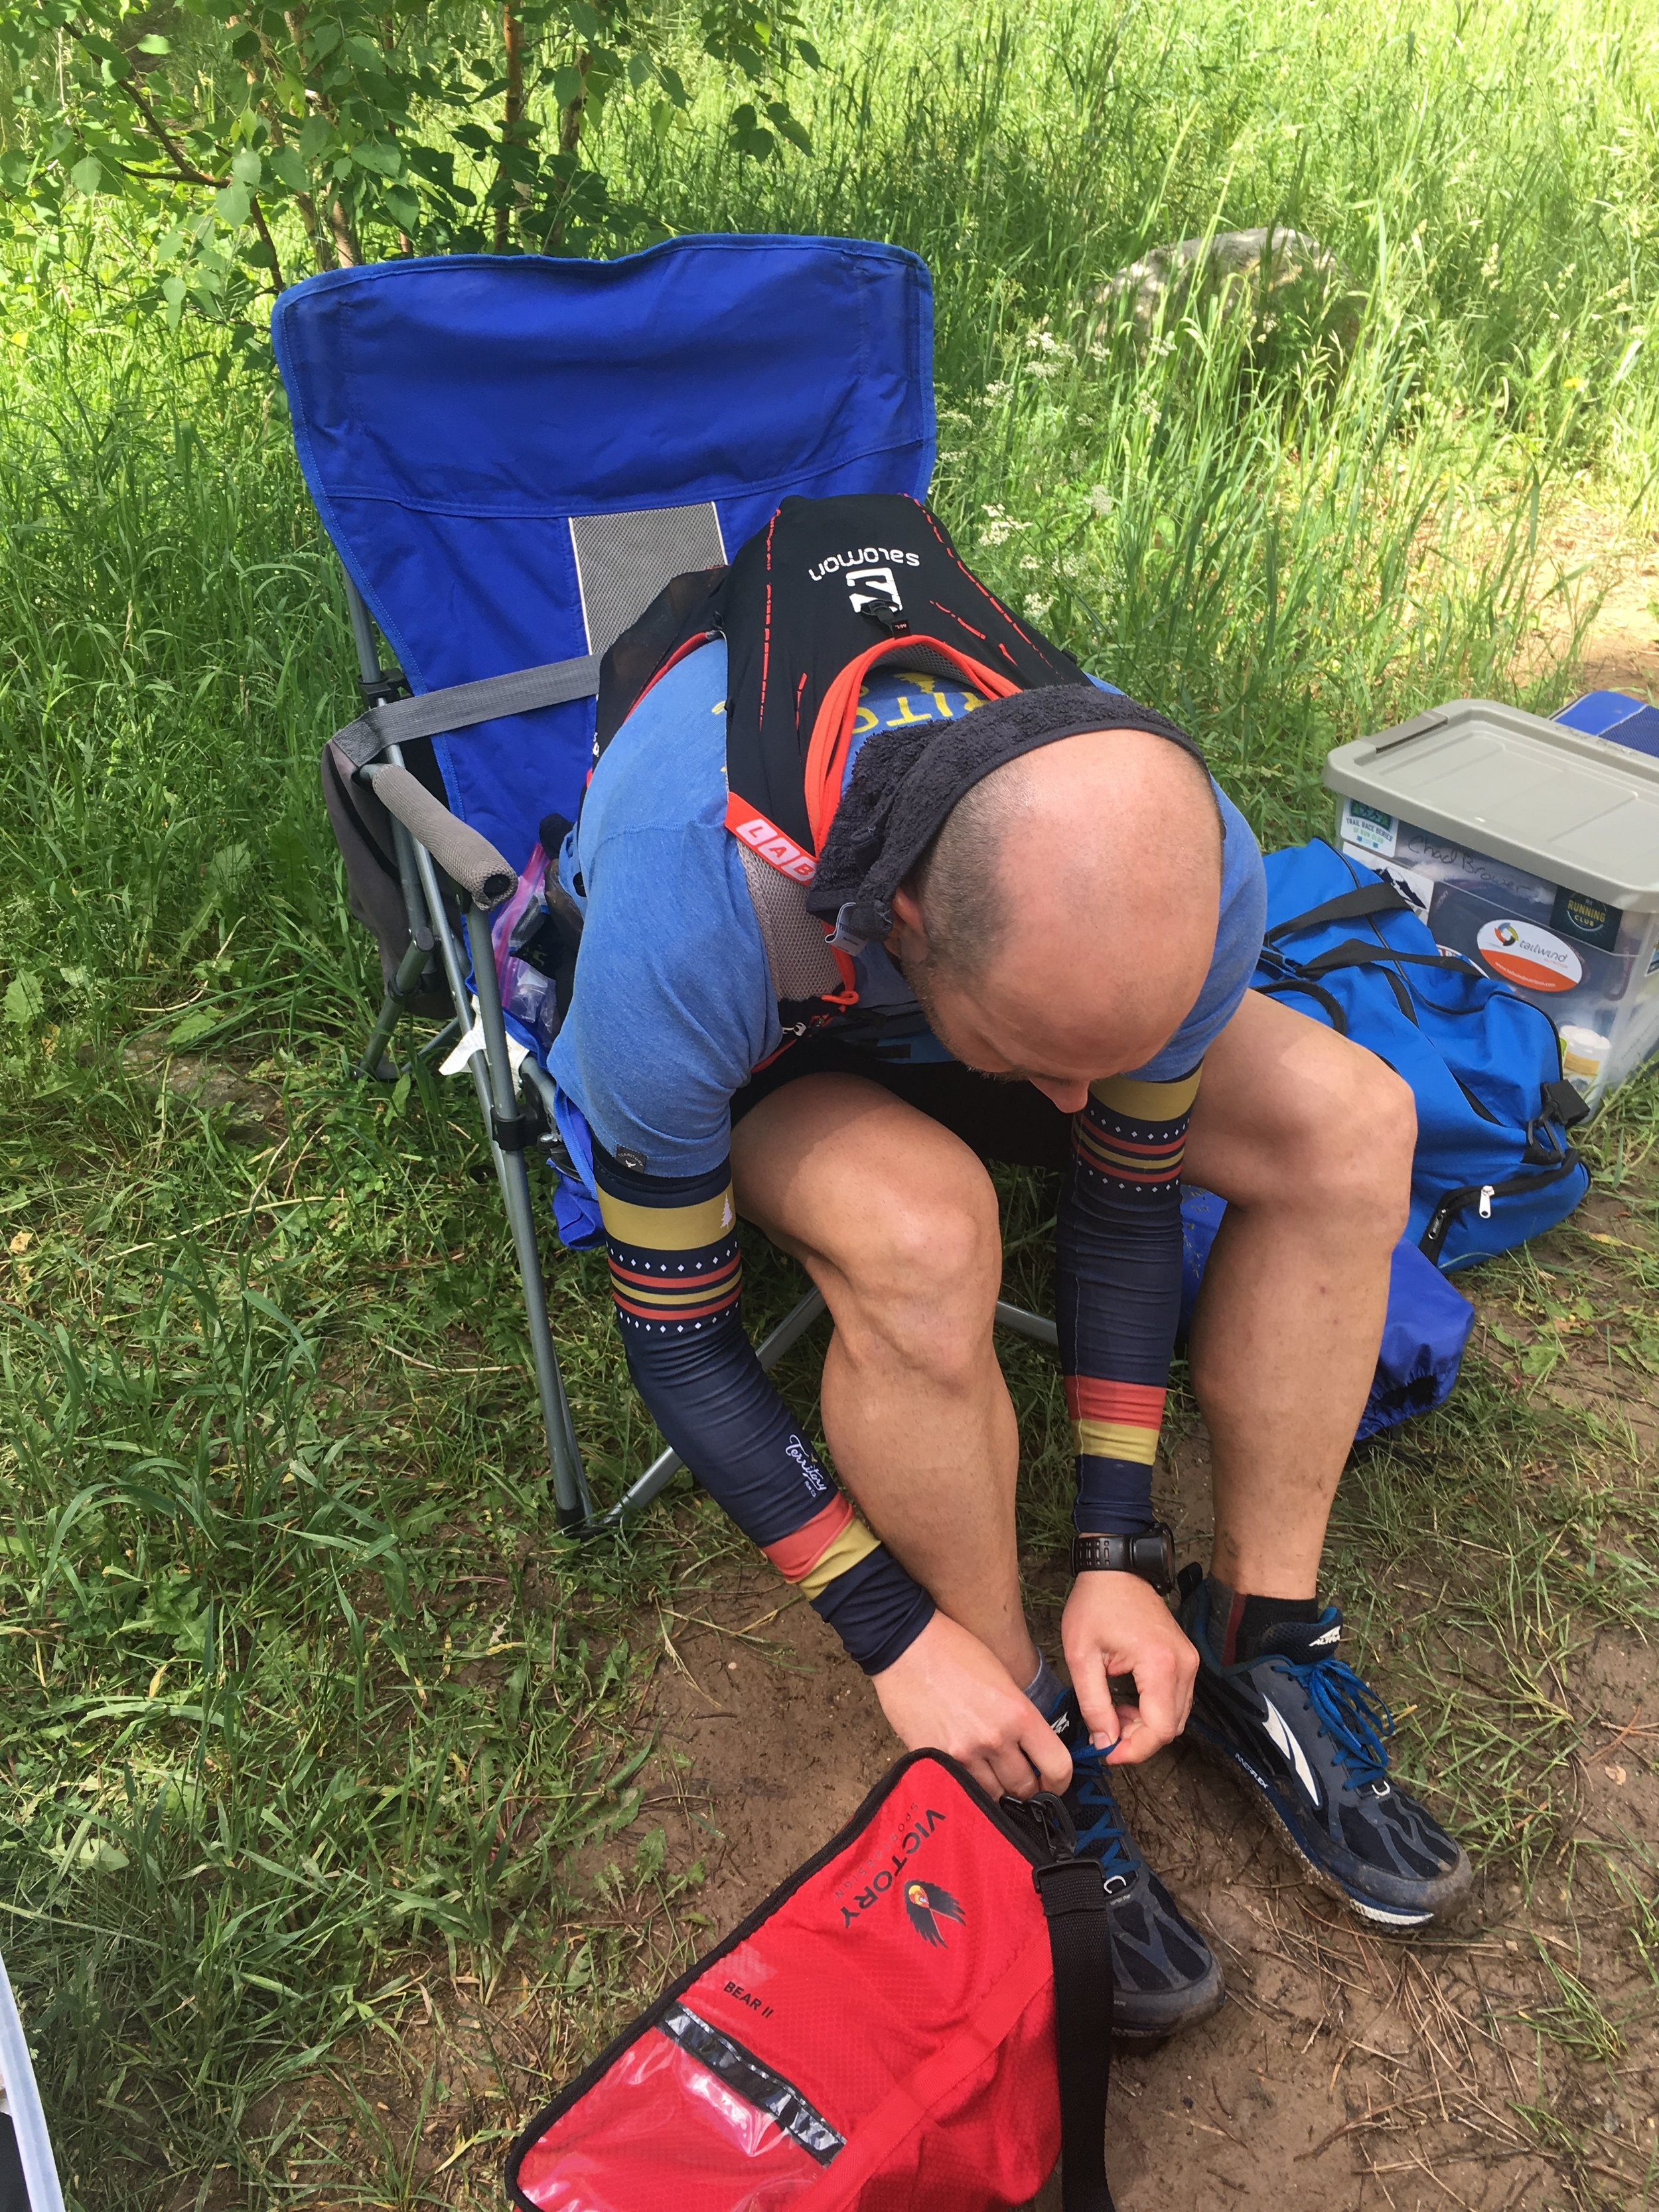 Changing my socks at Elk Creek after the river crossings.